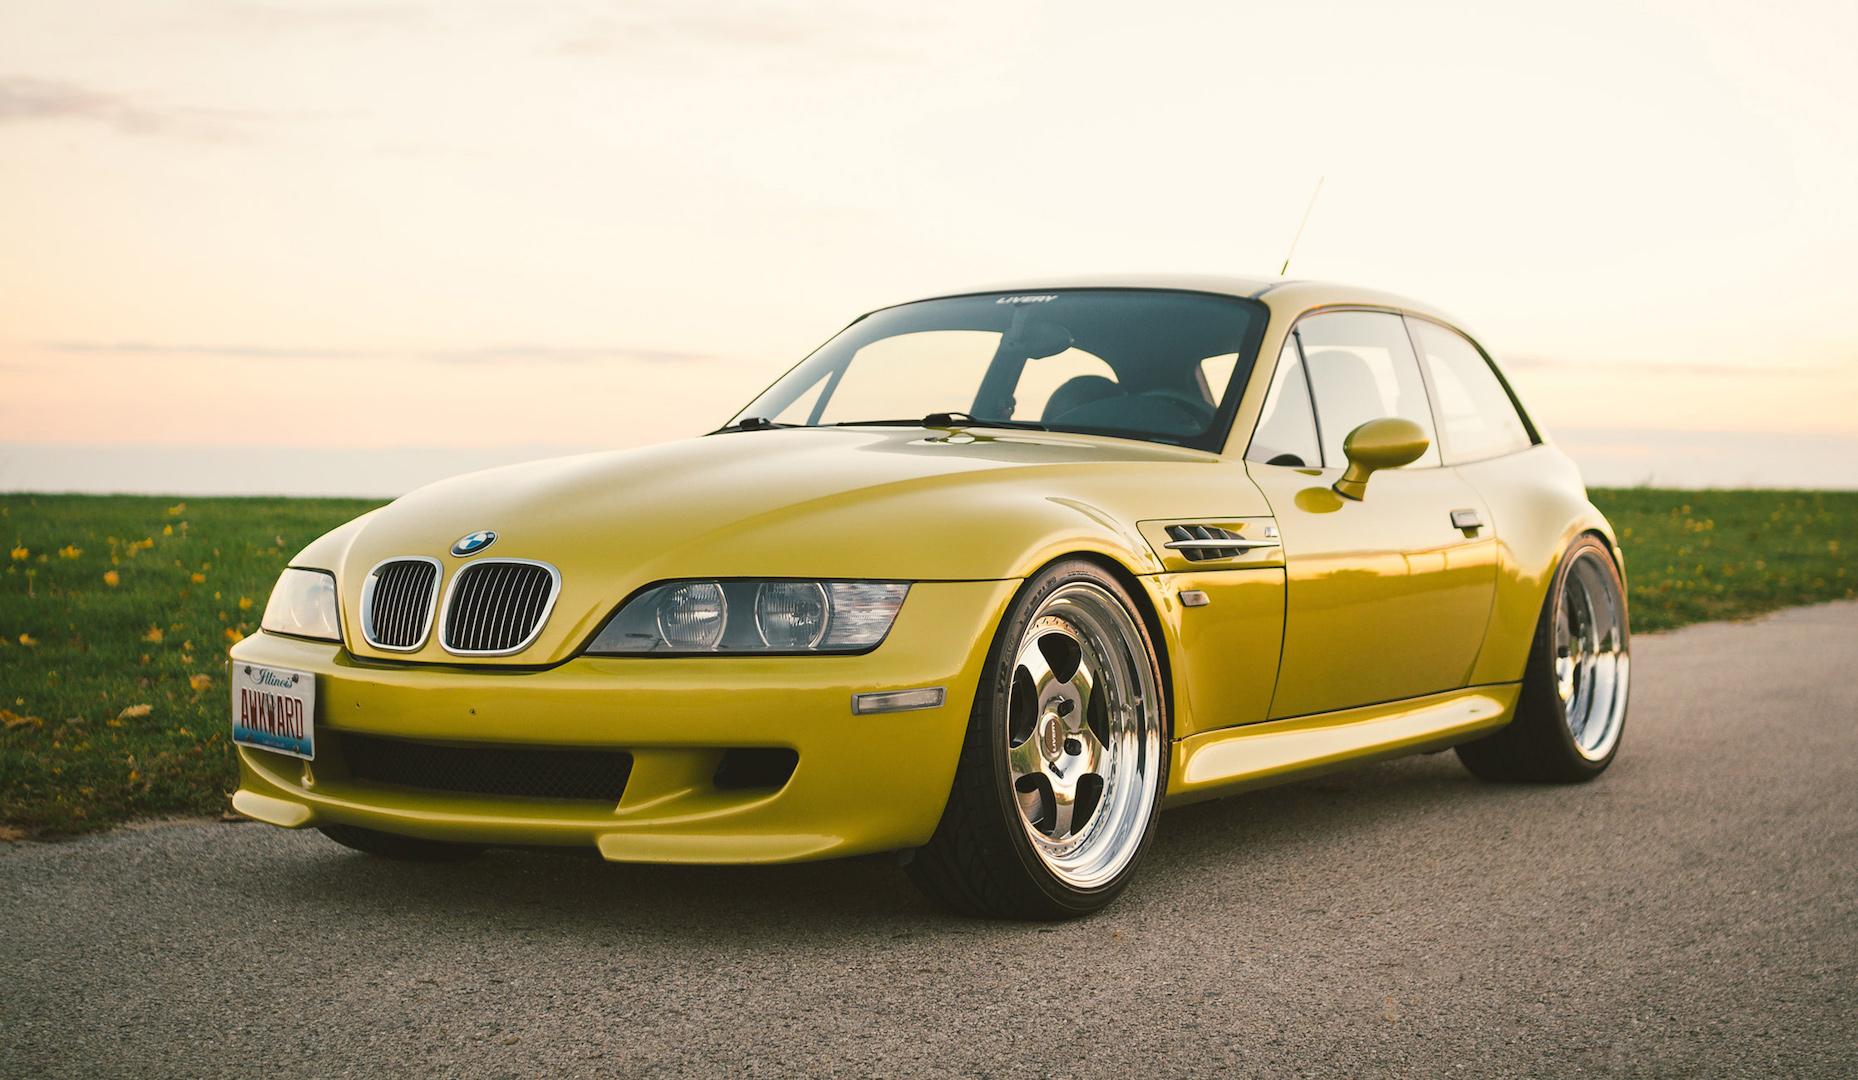 Phoenix Yellow Z3m S54 Coupe Tasteful Mods For